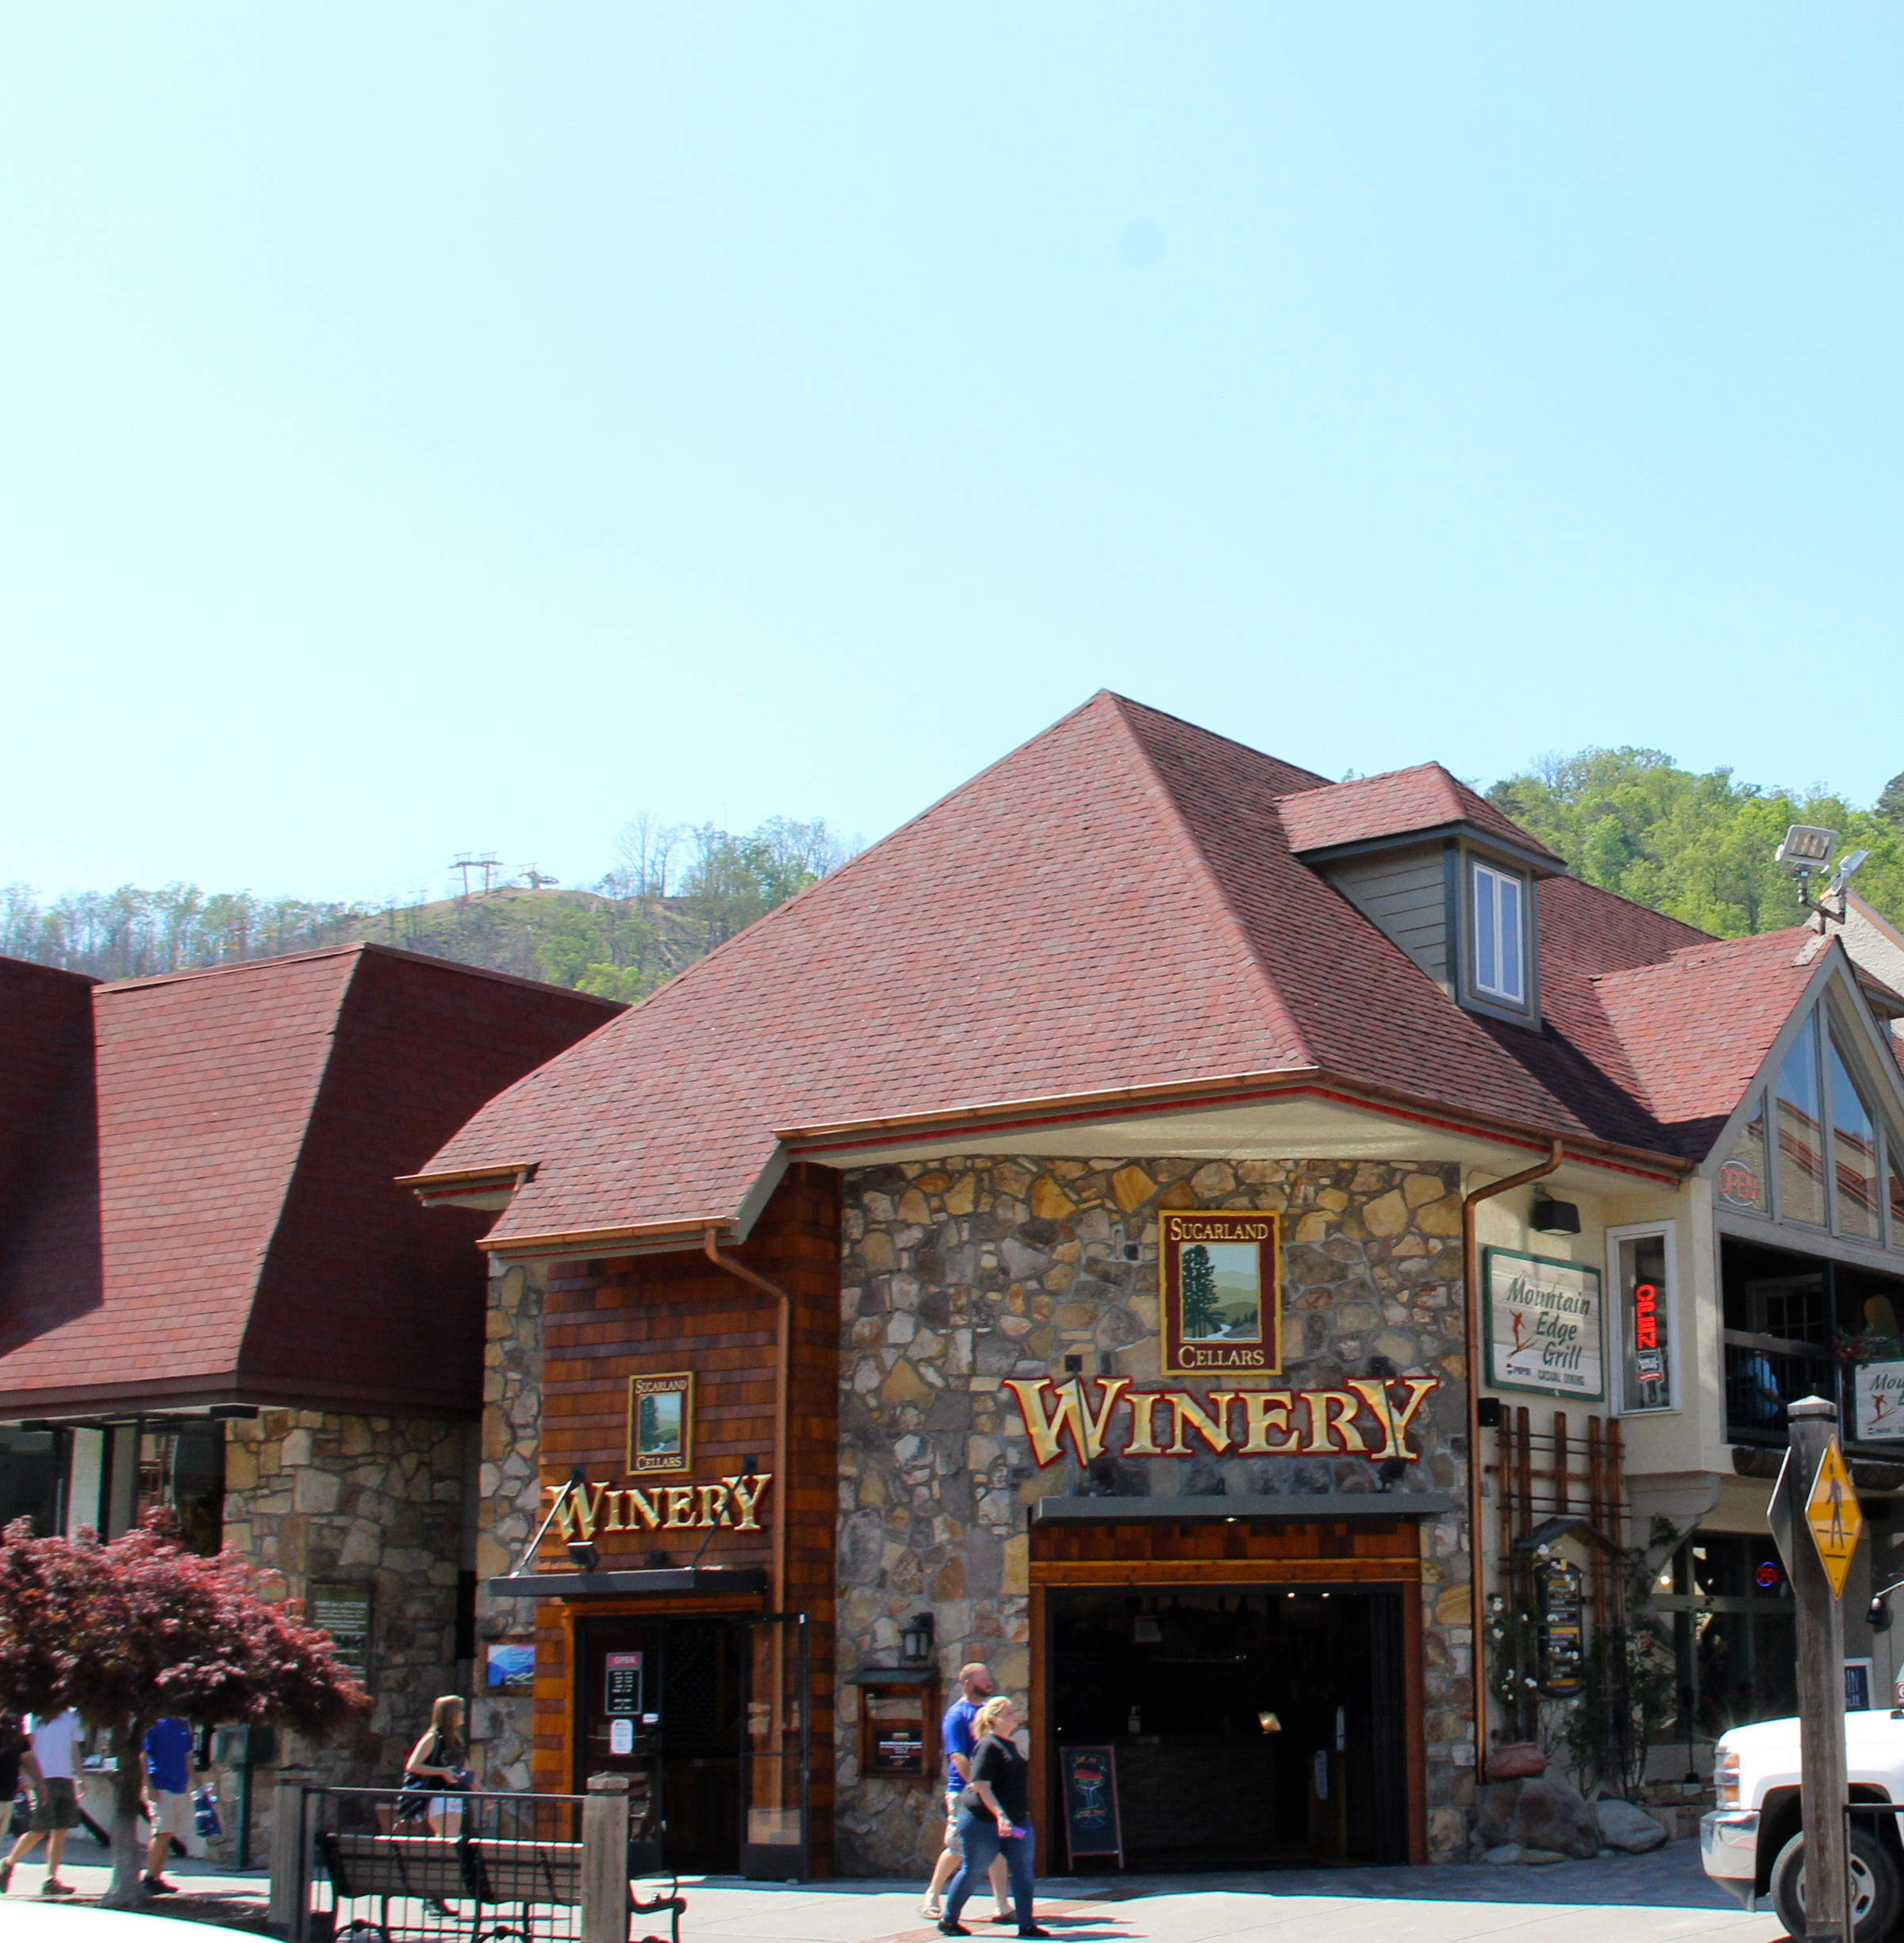 smoky walk in more little at and a to drive places have the pigeon do of this forge much while nice cabins gatlinburg mountains tennessee seems definitely you top area lot things img downtown commercial is